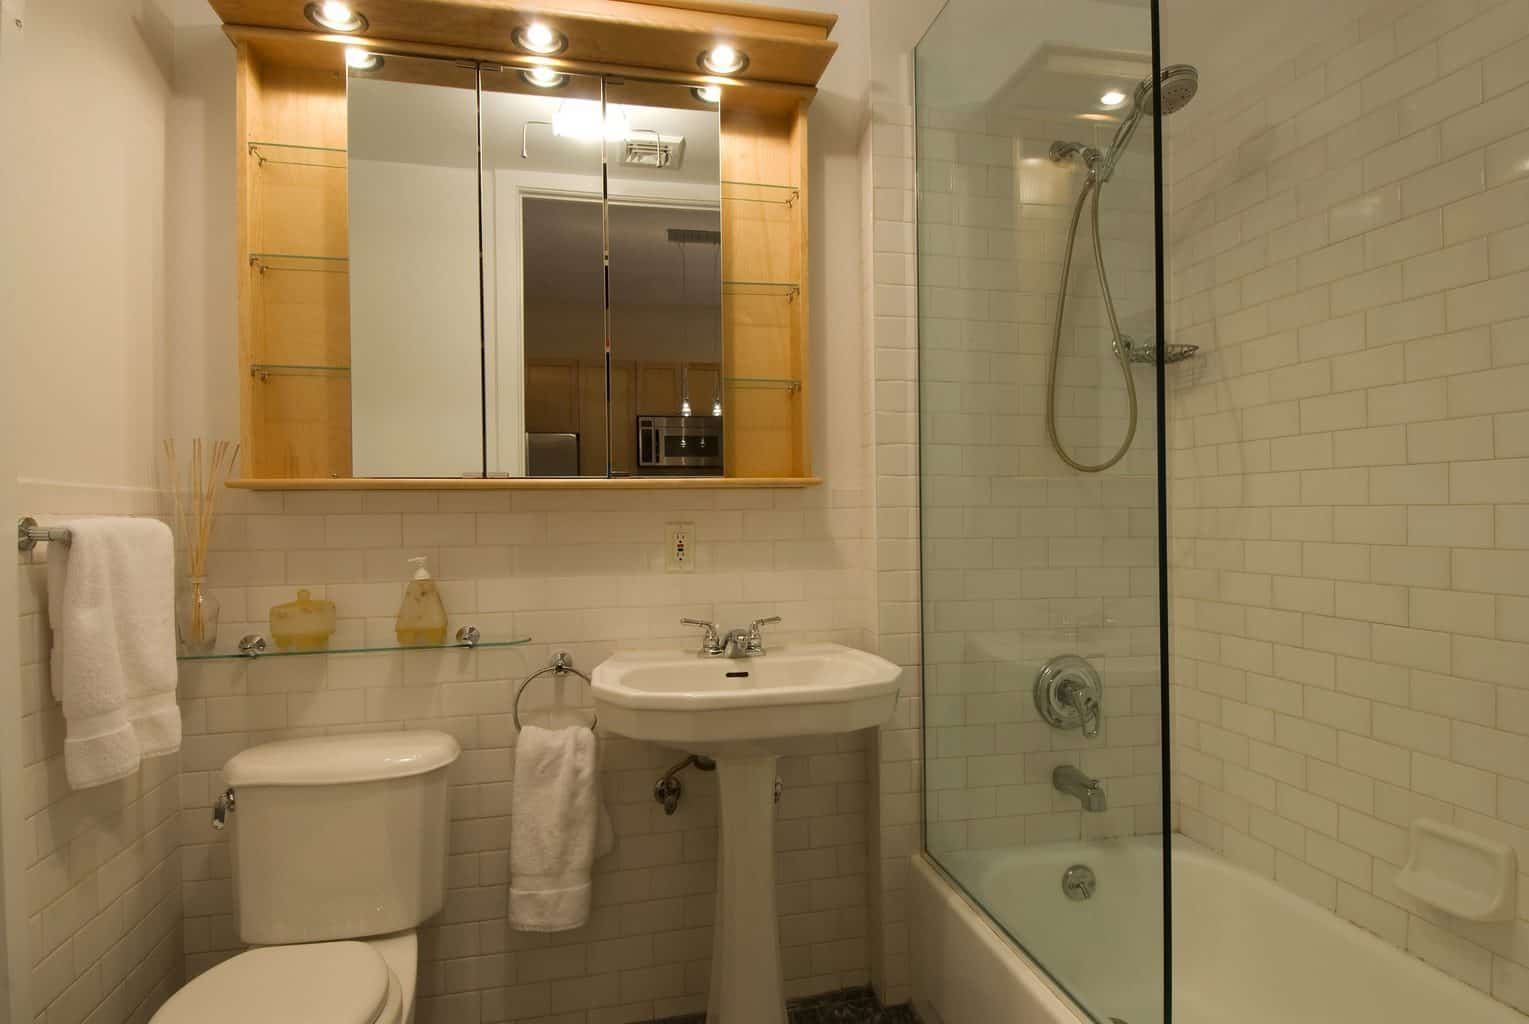 Bathroom with a low flow handheld shower head